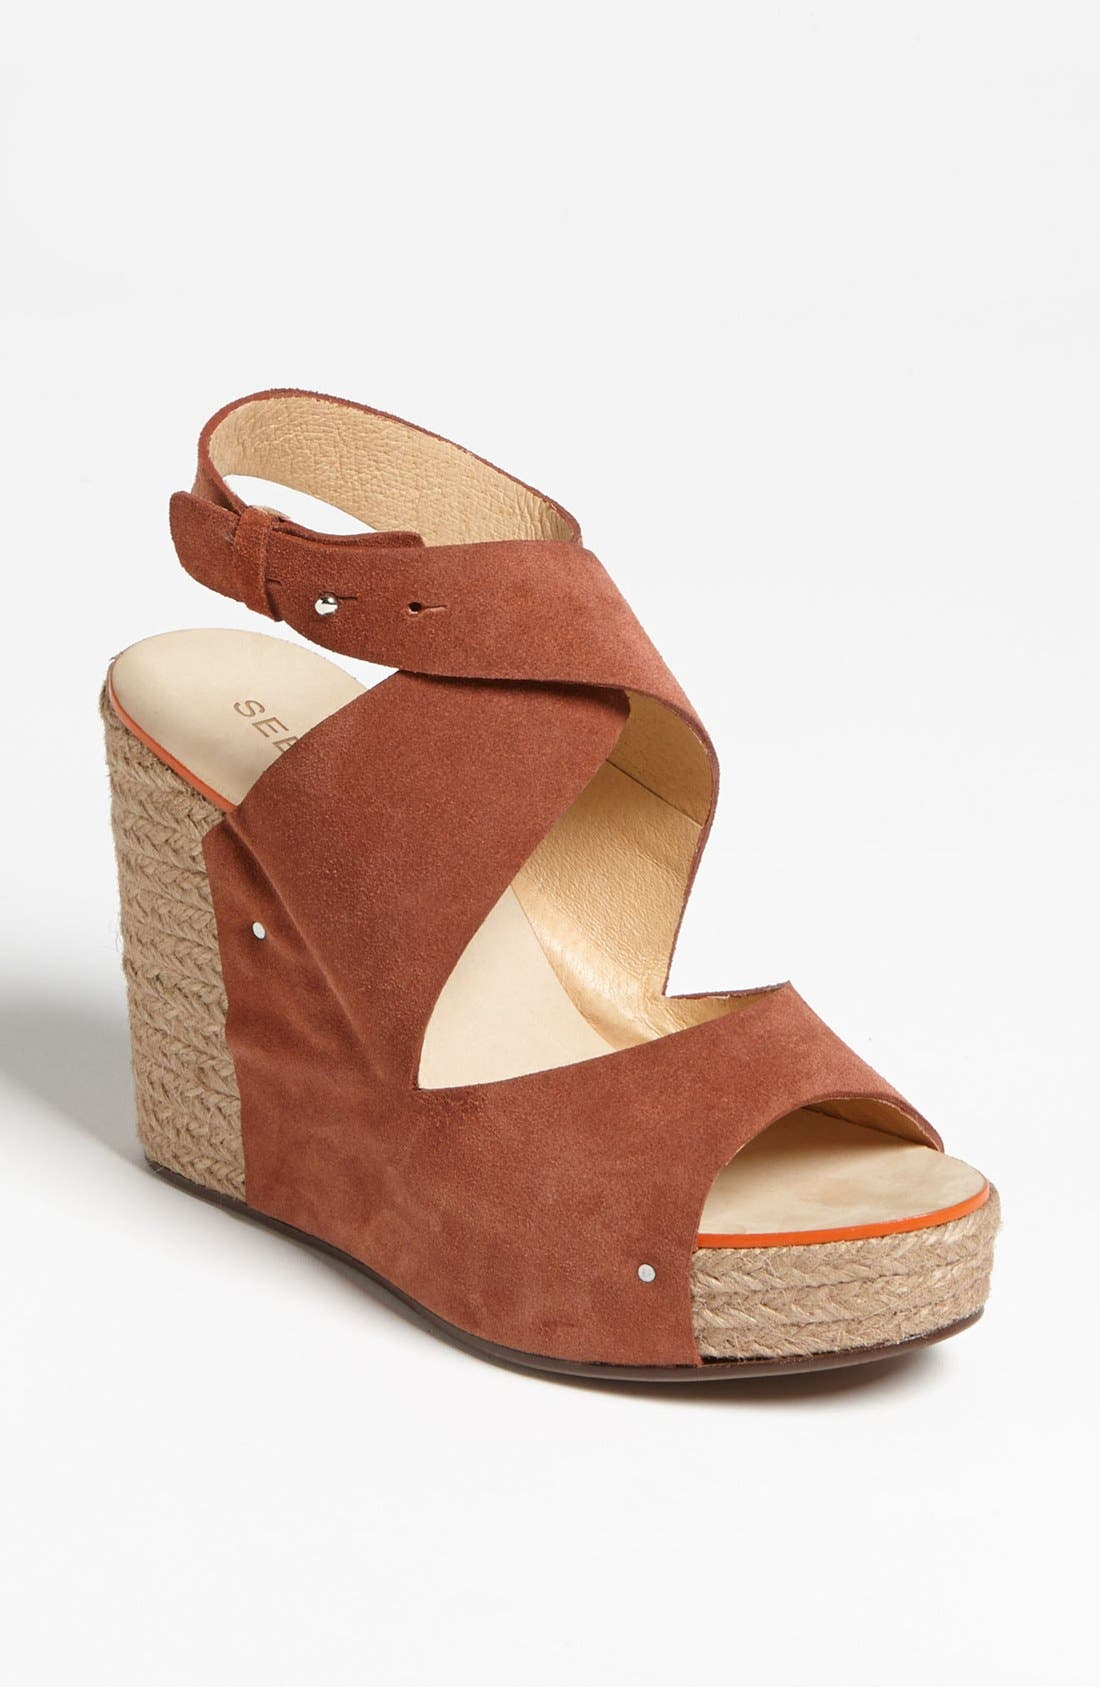 Alternate Image 1 Selected - See by Chloé 'Mica' Wedge Sandal